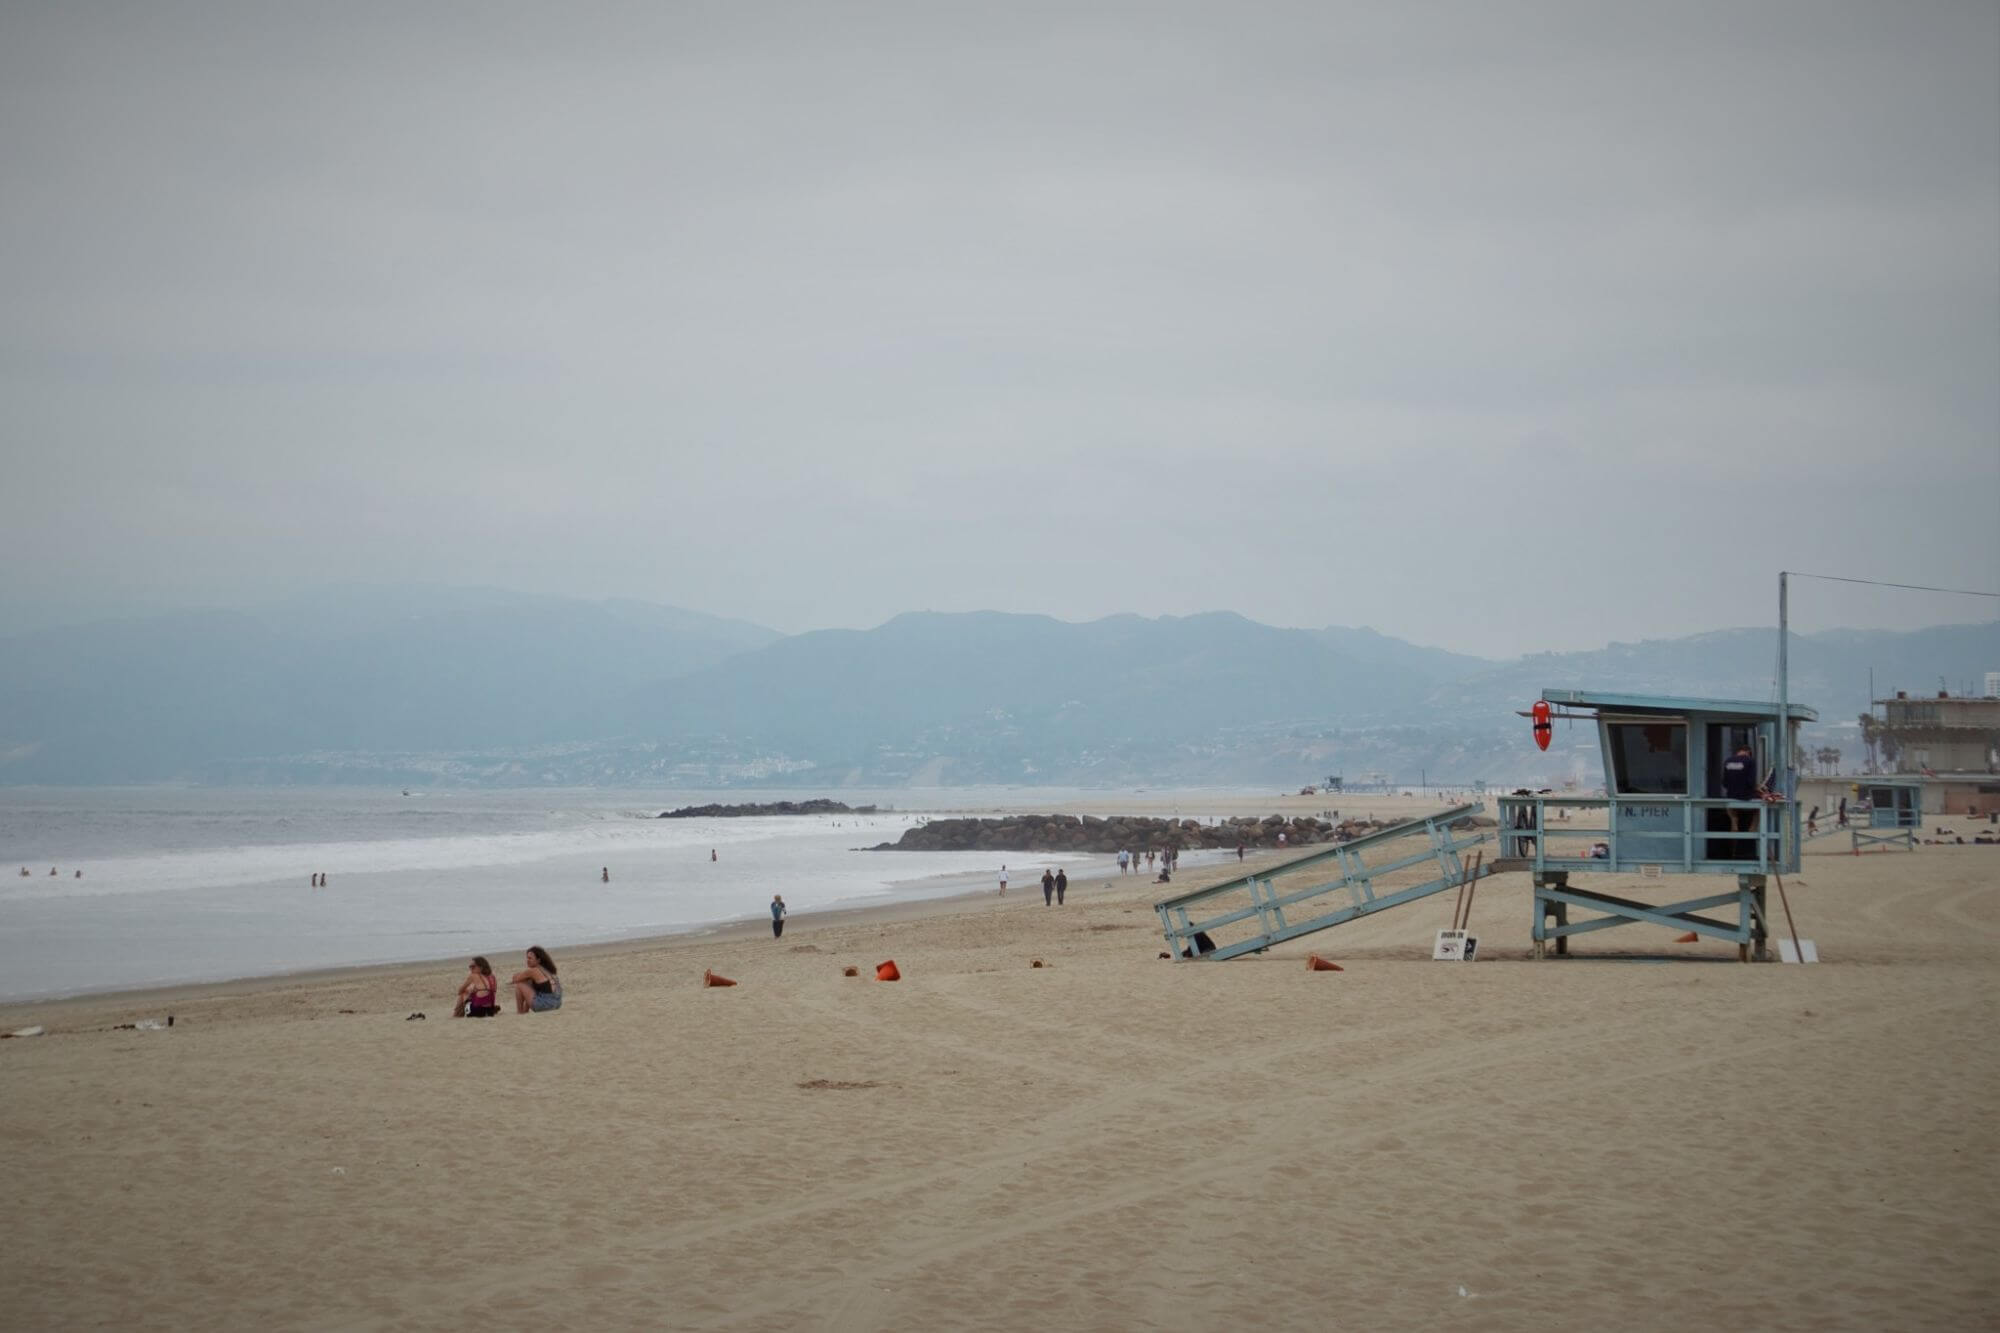 Lifeguard station on Venice Beach